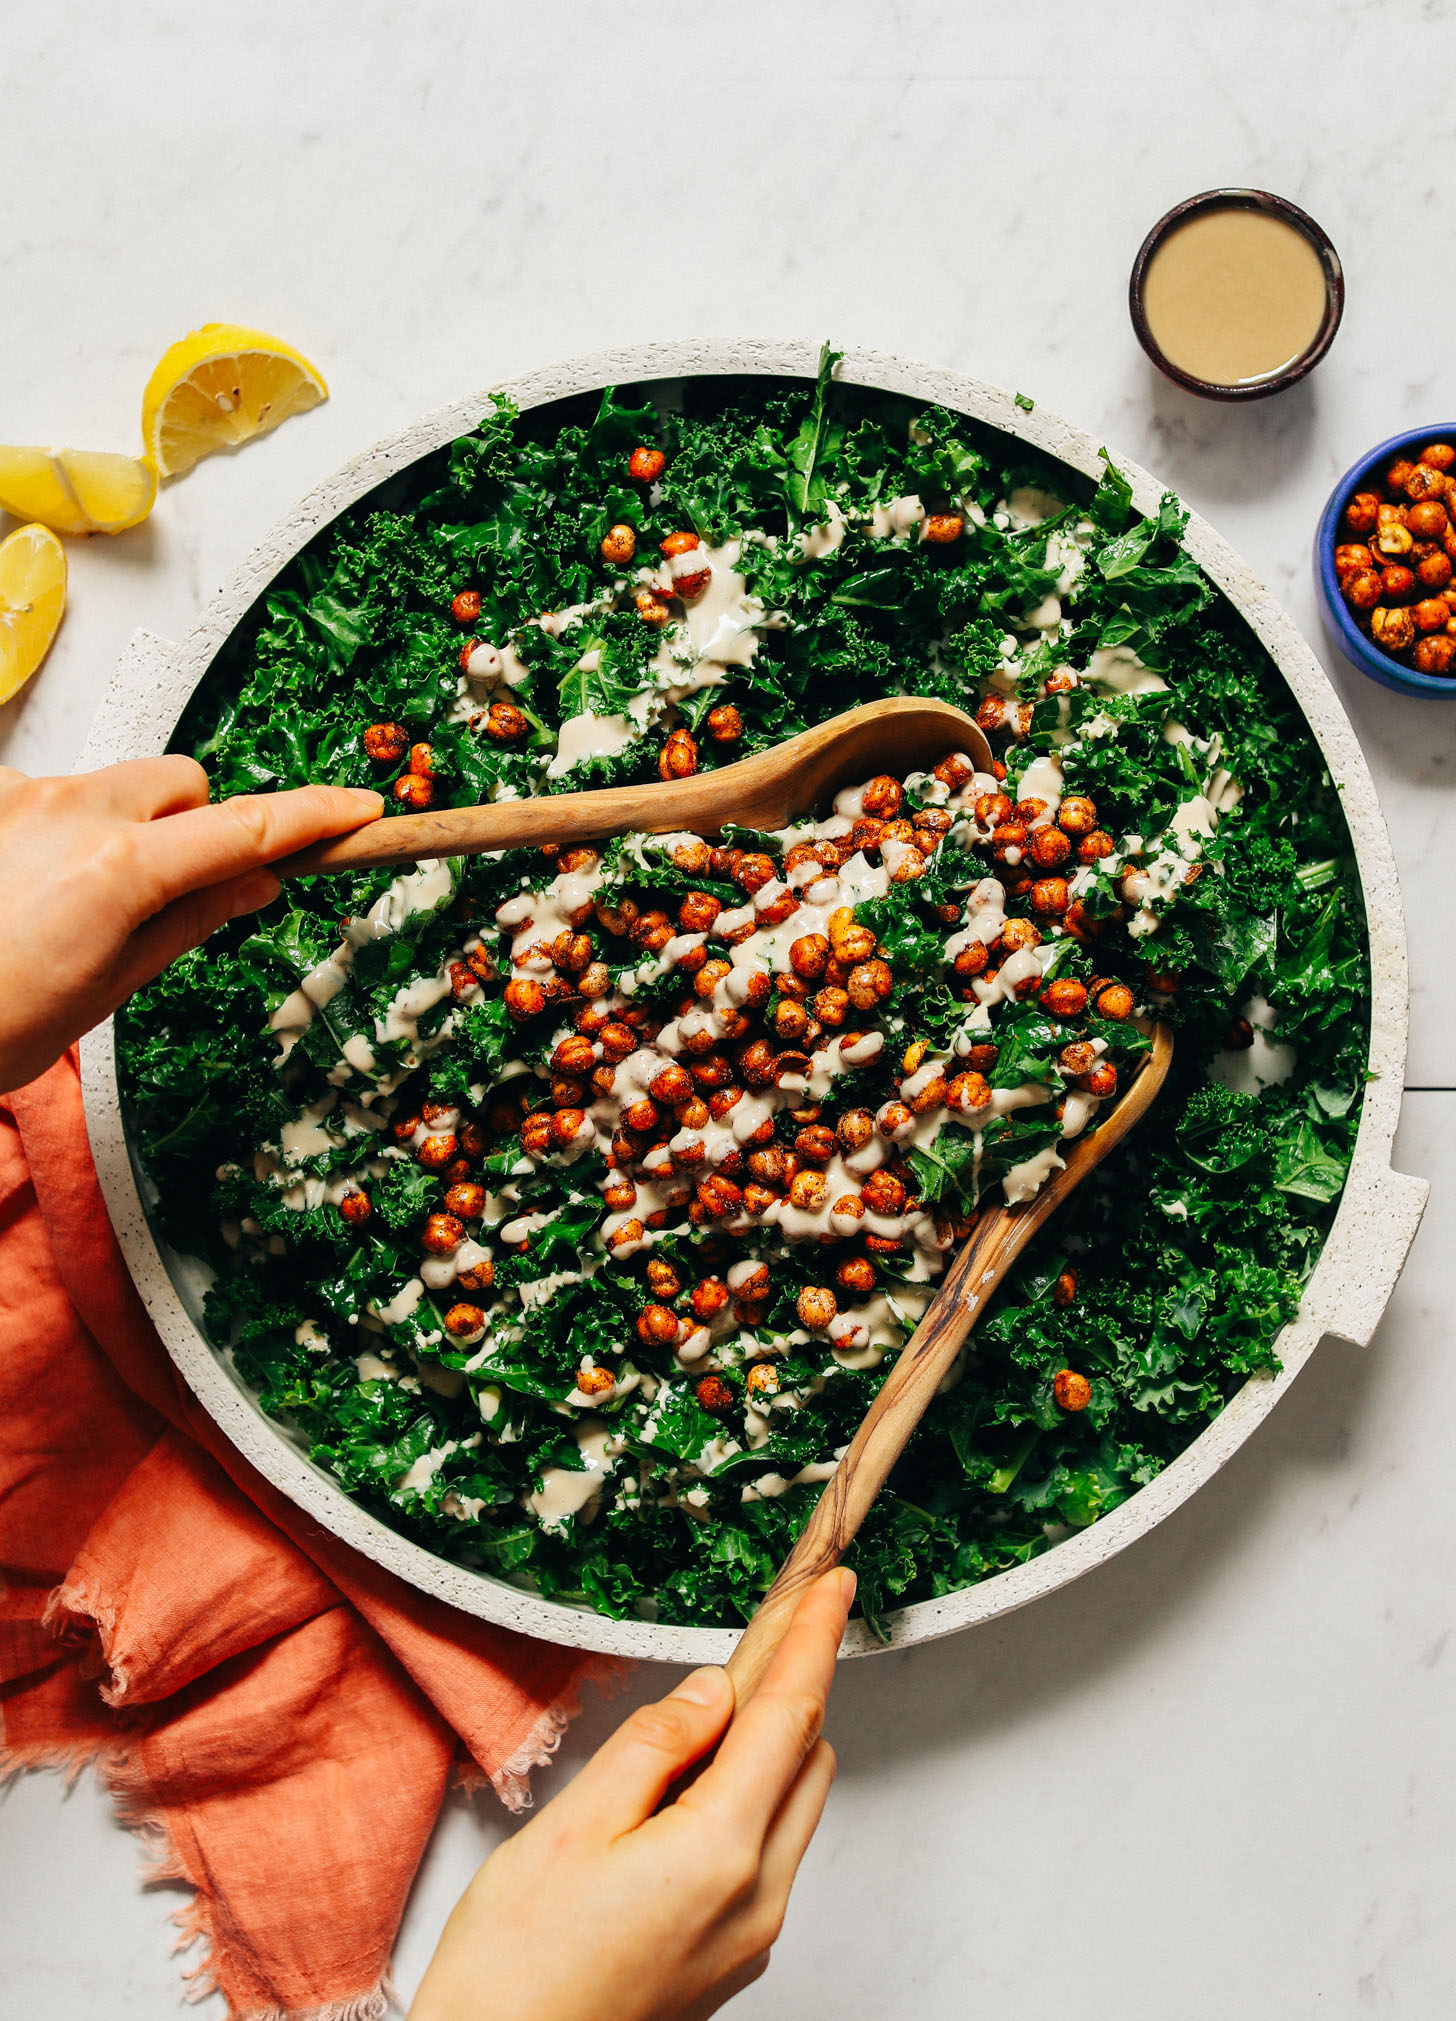 Platter of Massaged Kale Salad topped with Crispy Baked Chickpeas and tahini dressing